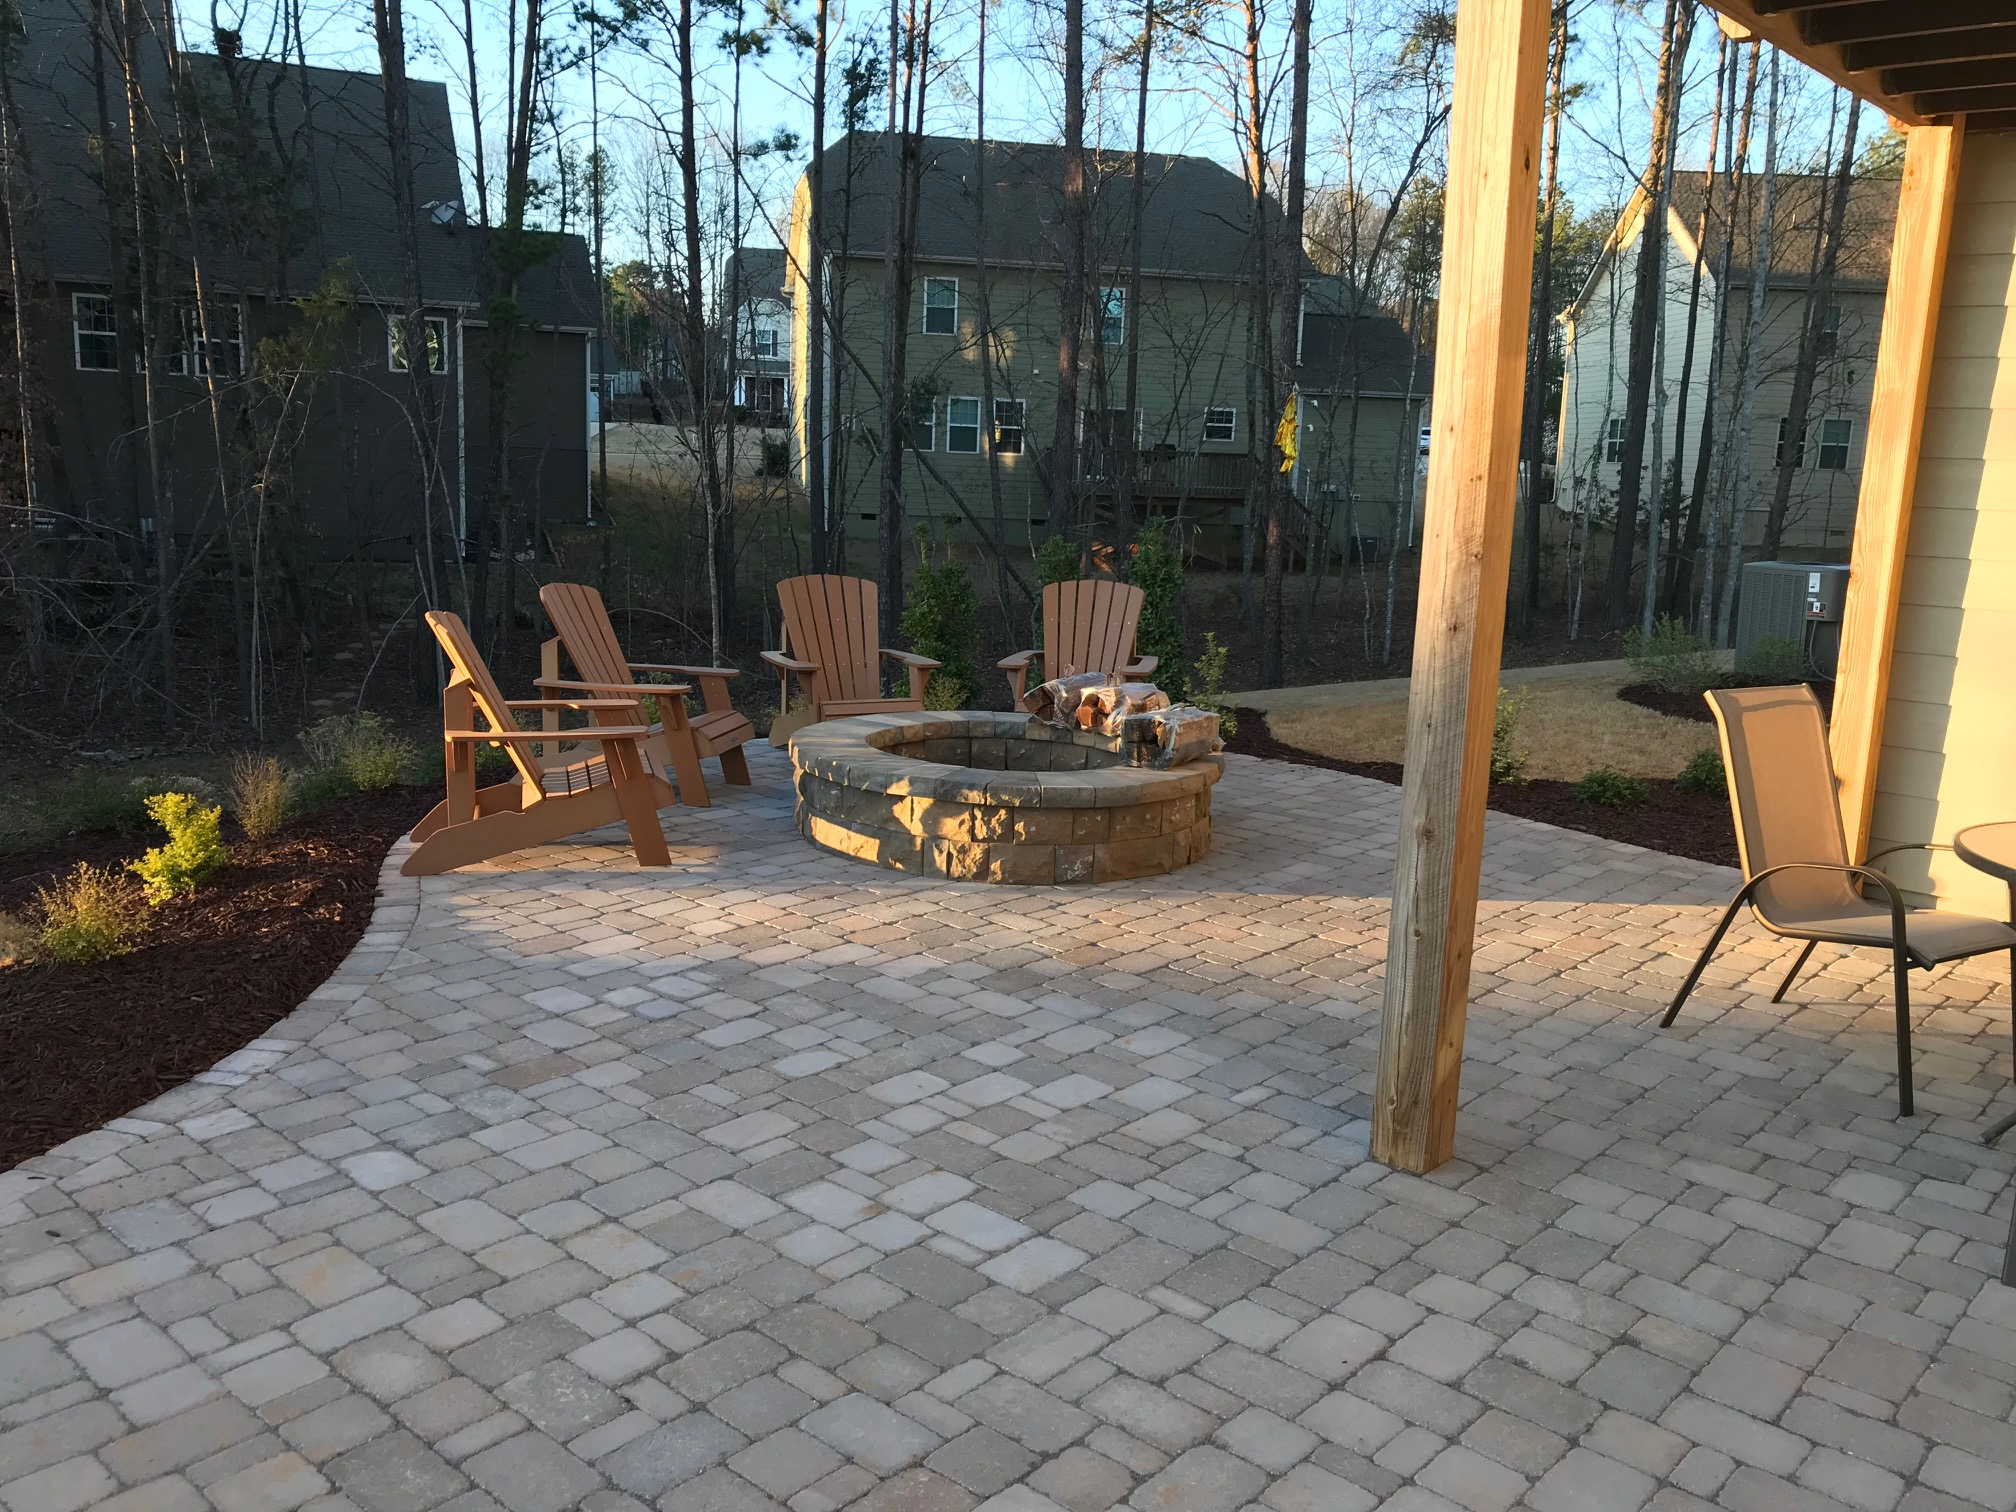 A Belgard Paver Patio Fire Pit And Landscaping Mr Outdoor Living